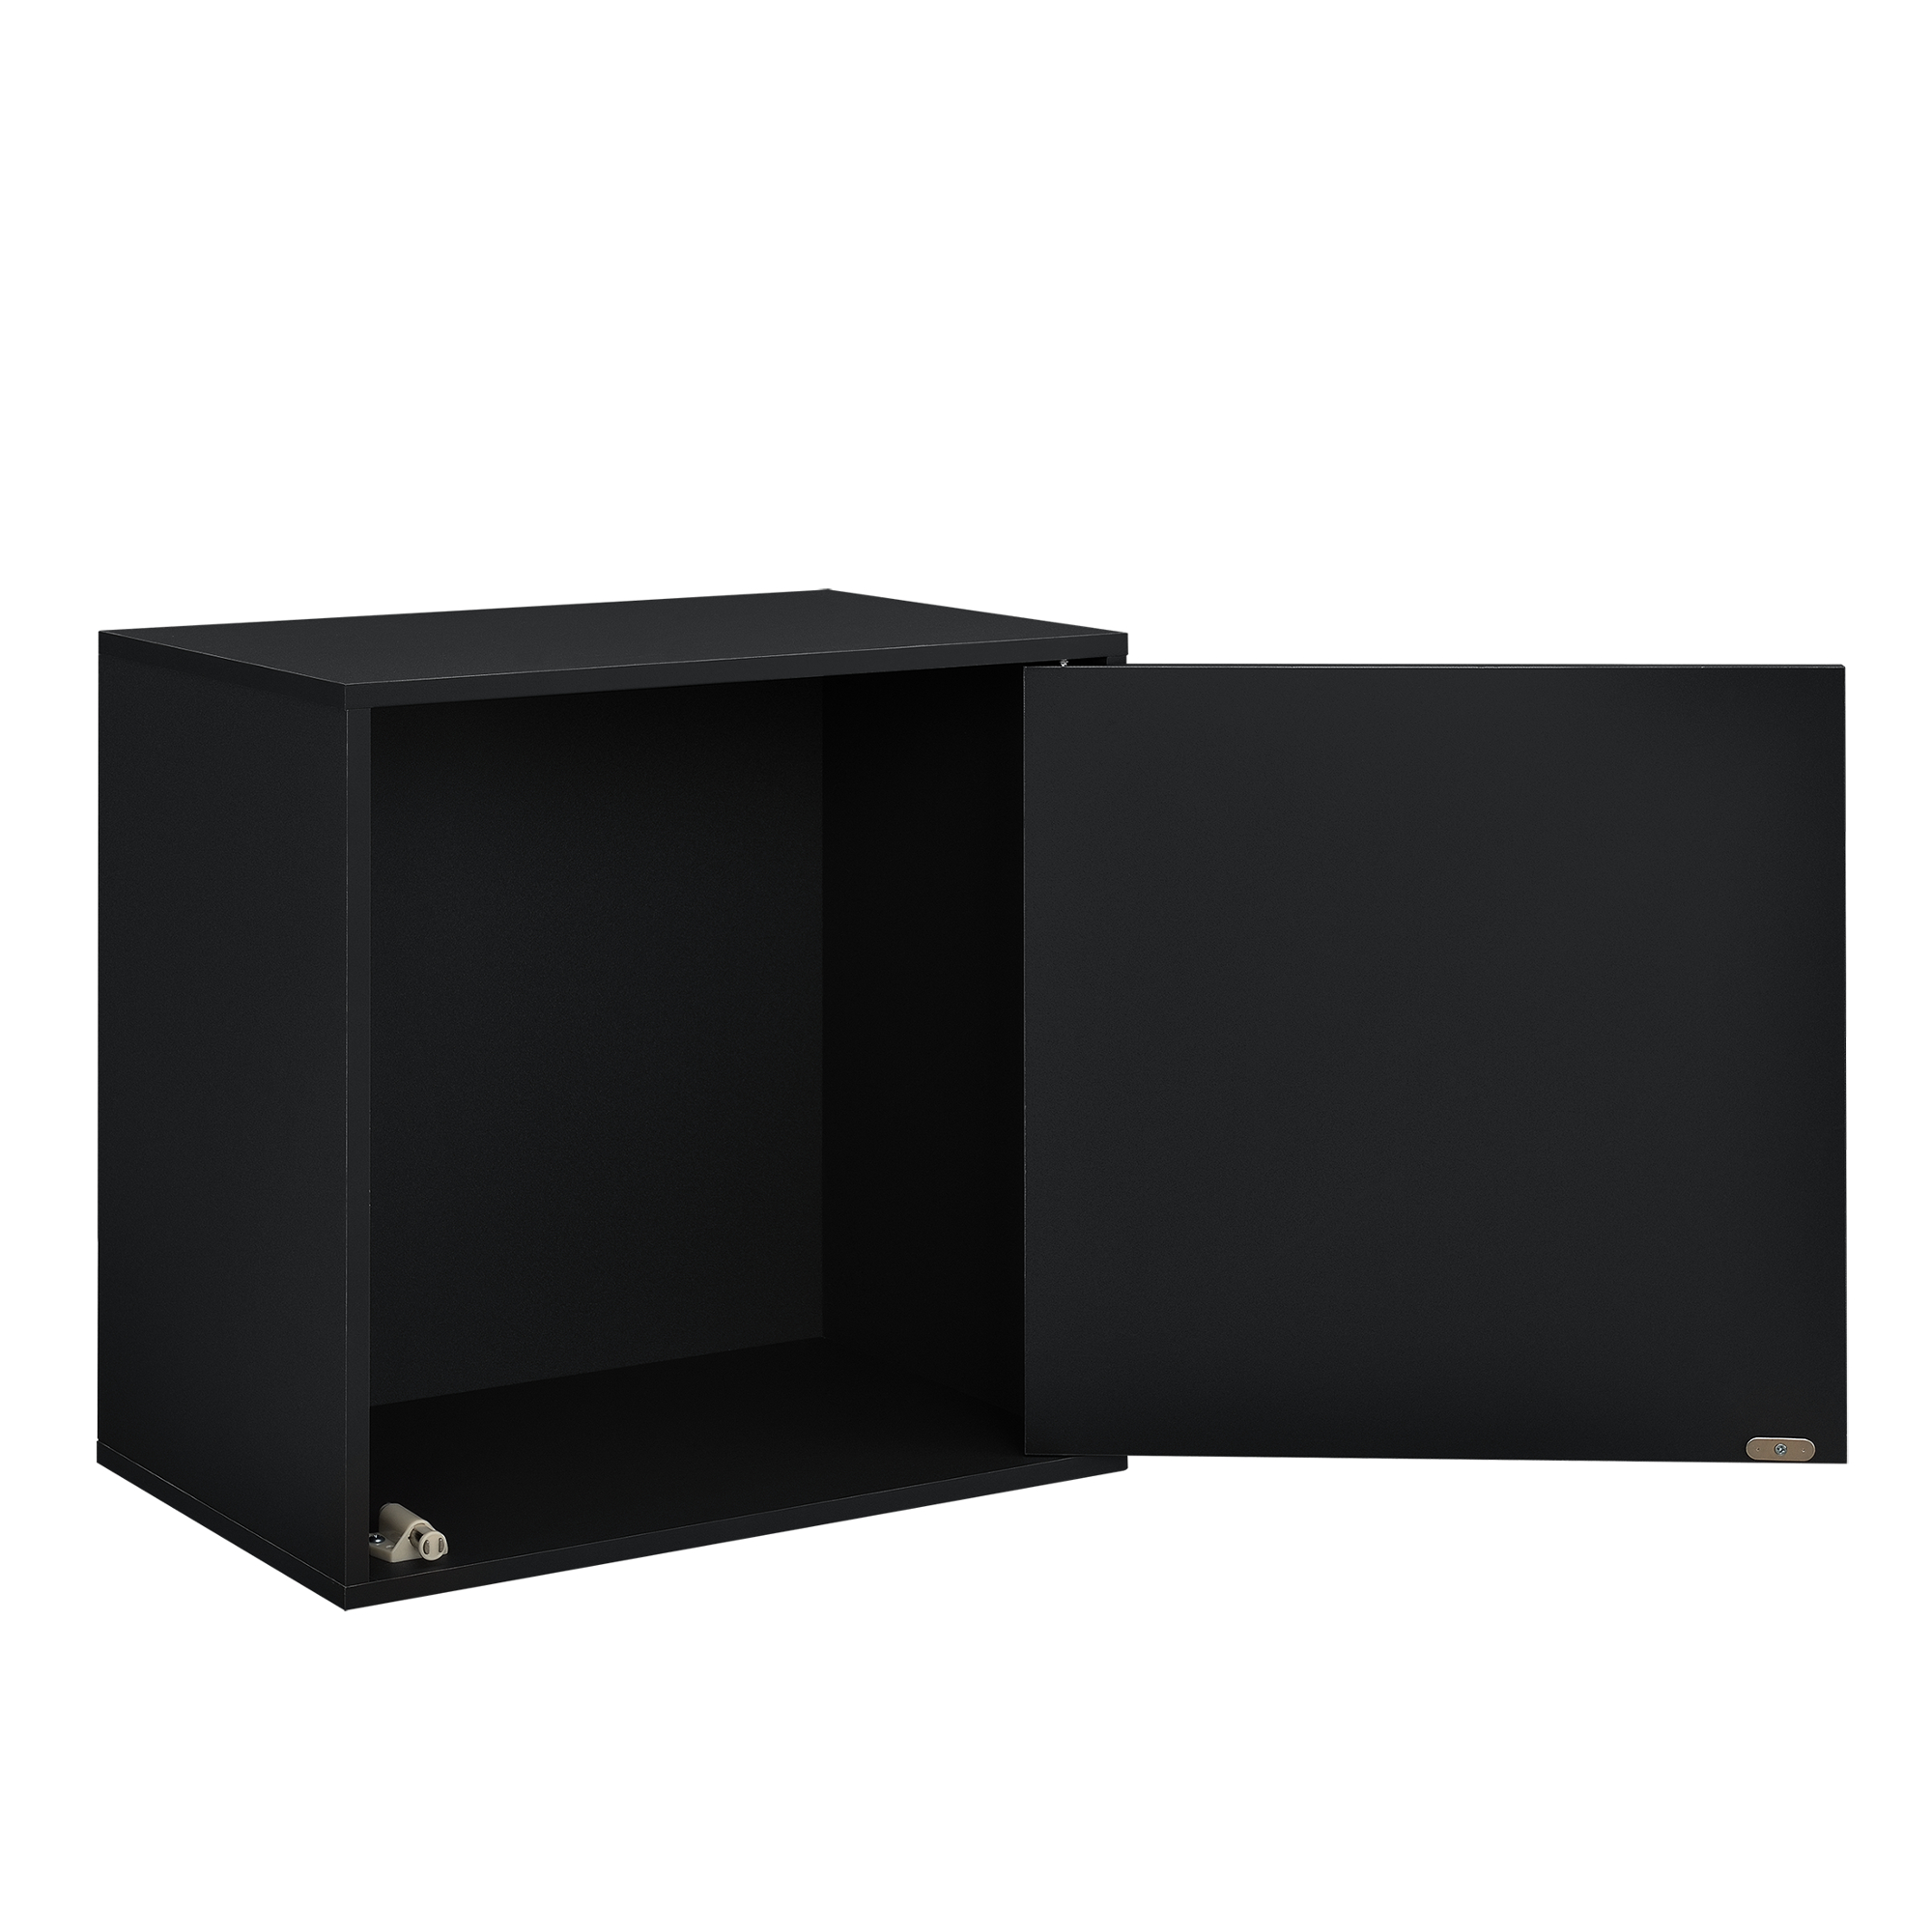 h ngeschrank 45x45x30cm schwarz wandschrank schrank wandregal regal ebay. Black Bedroom Furniture Sets. Home Design Ideas